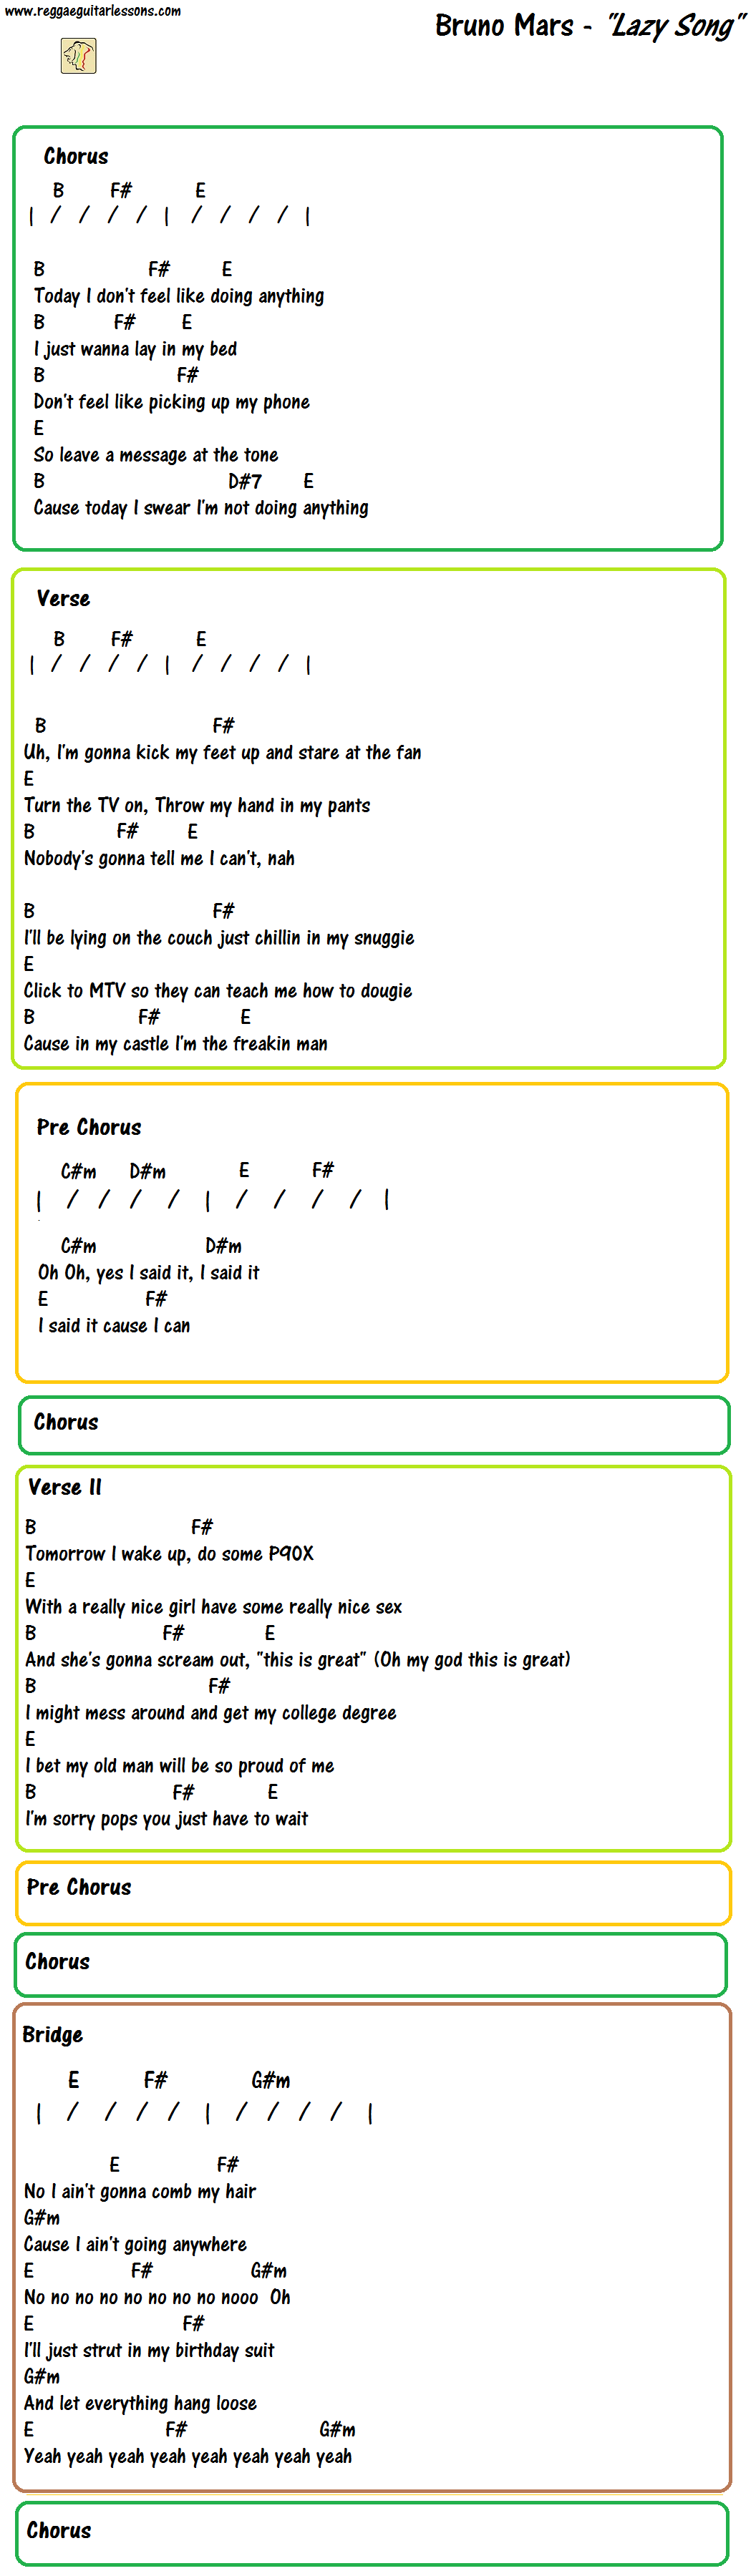 The Lazy Song Bruno Mars Chords Lyrics Guitar Chord Charts